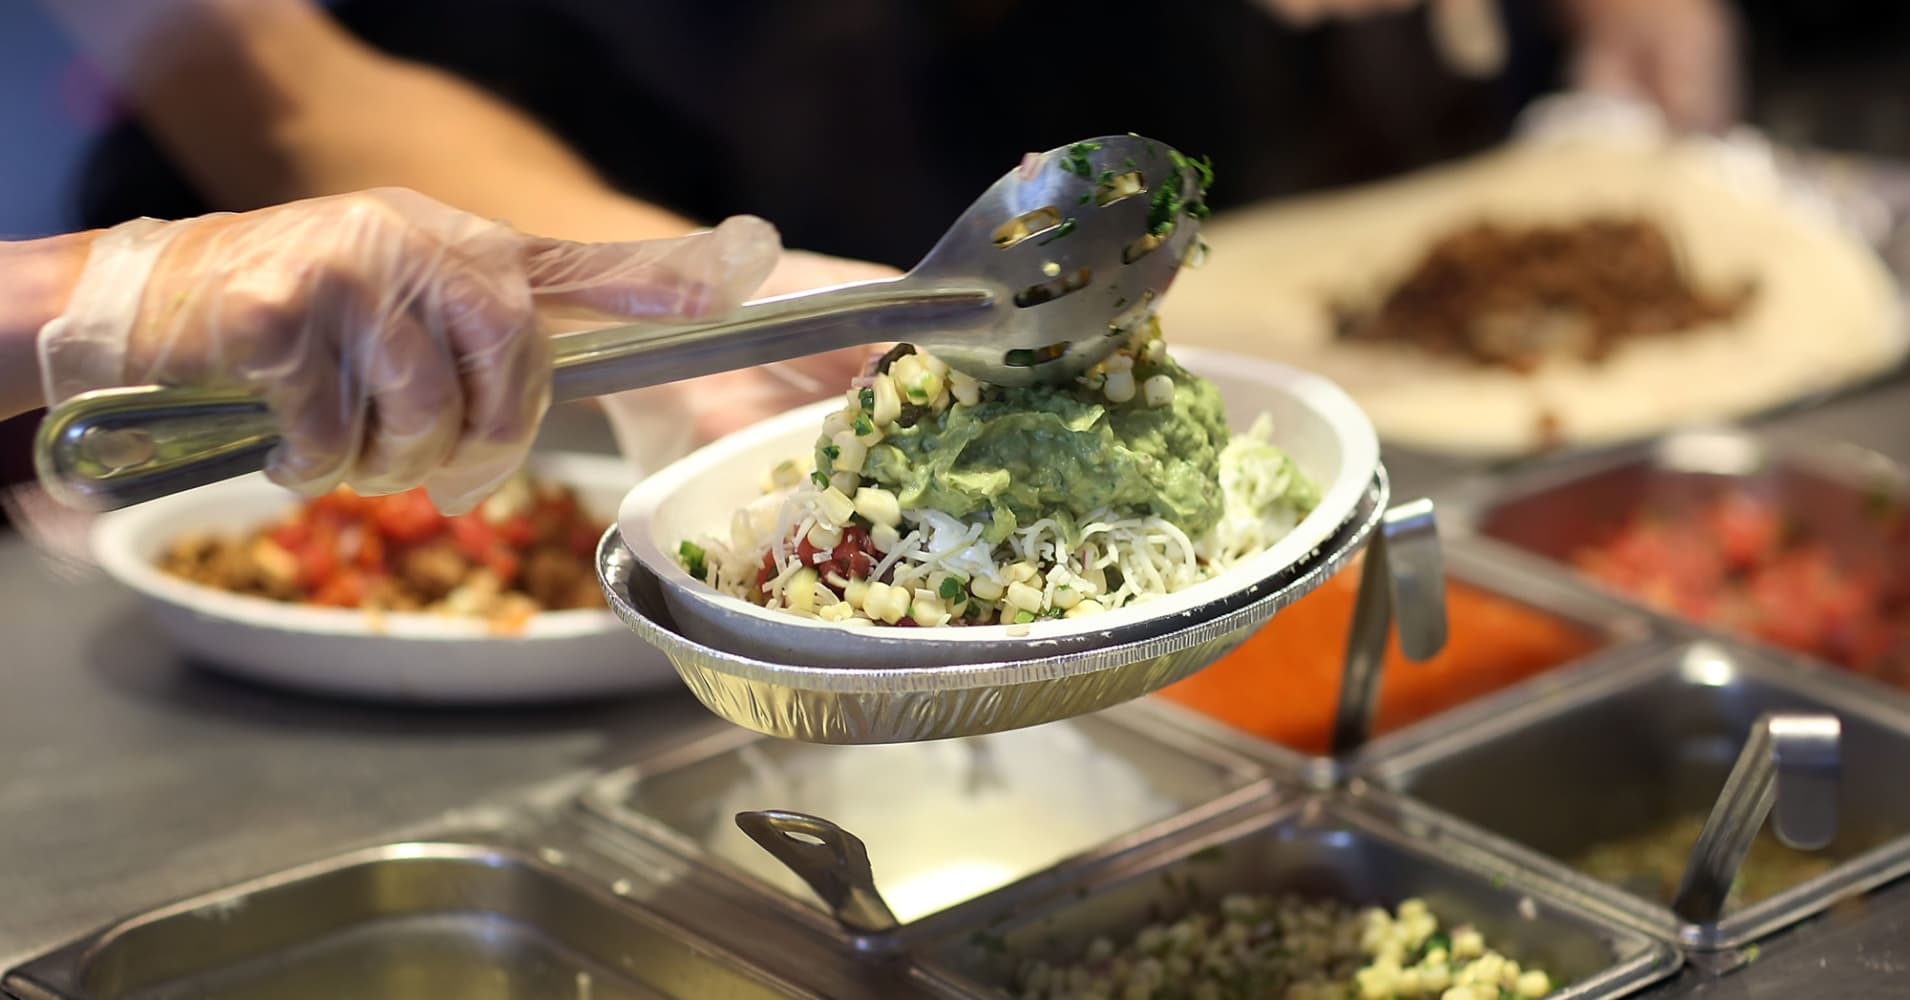 Chipotle says Virginia restaurant reopening after cleaning